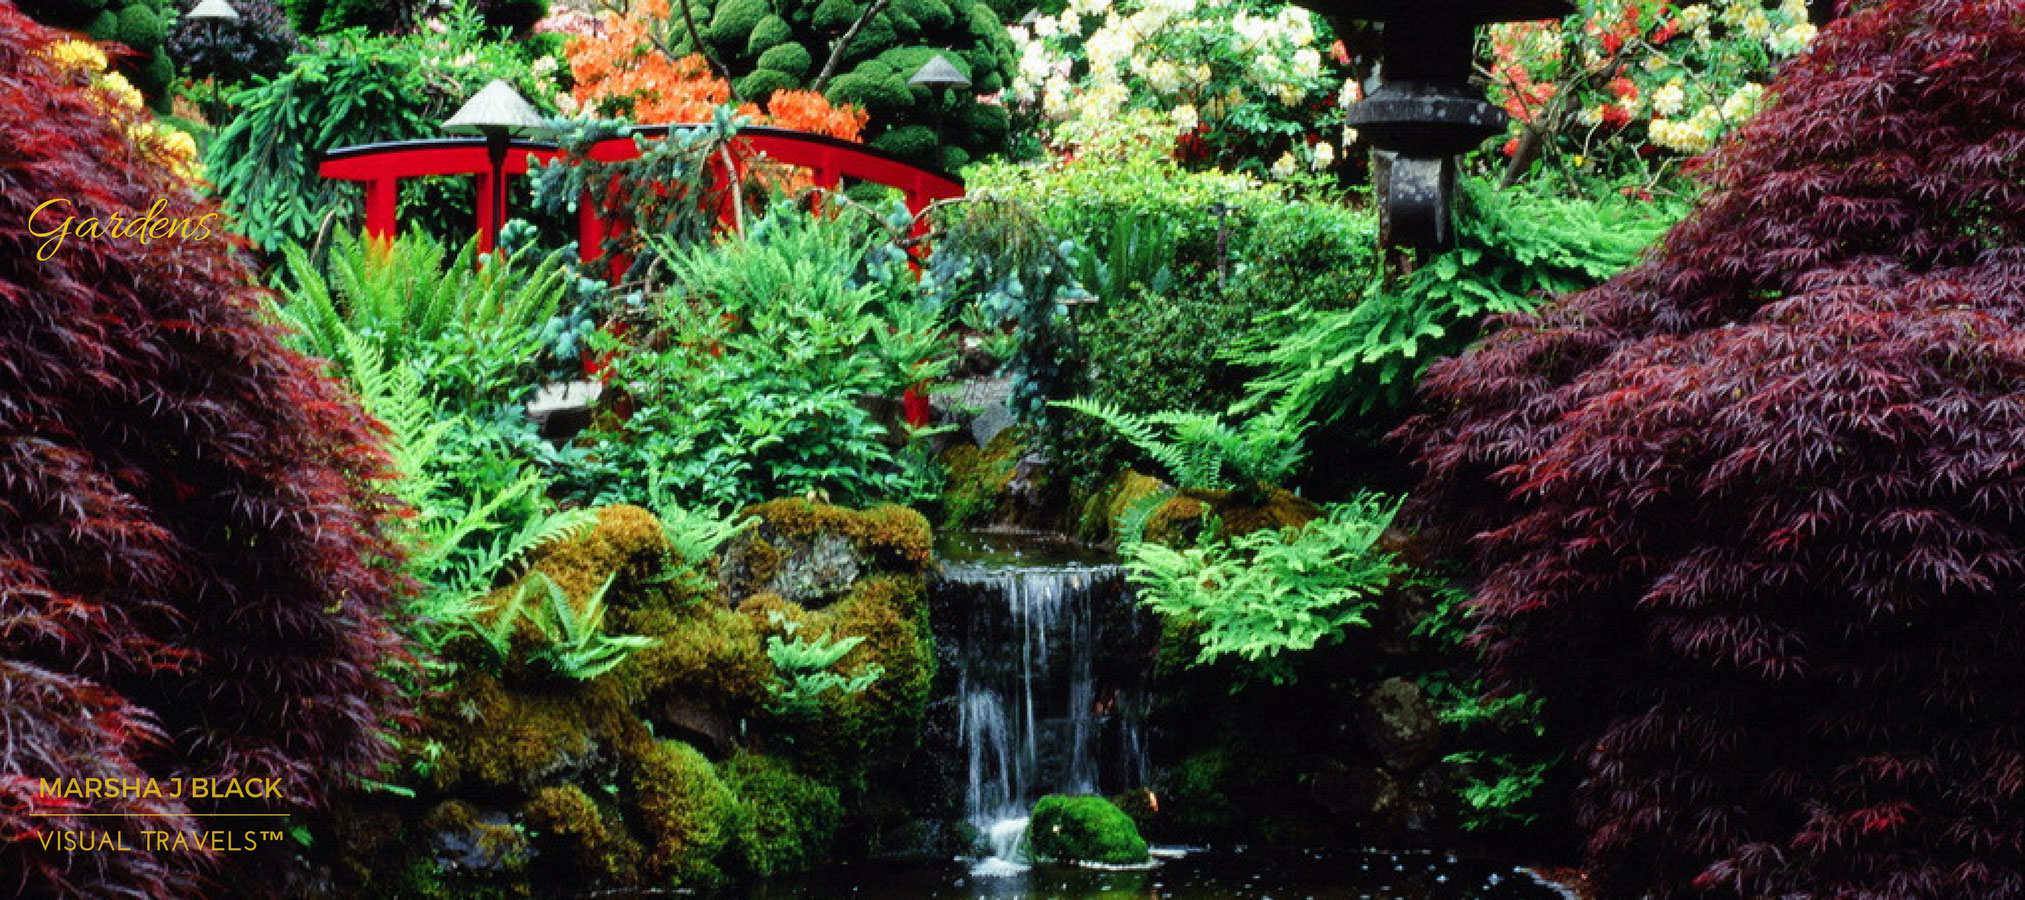 Japanese Garden at Butchart Gardens, Vancouver Island, BC by Marsha J Black | Visual Travels™ Photography